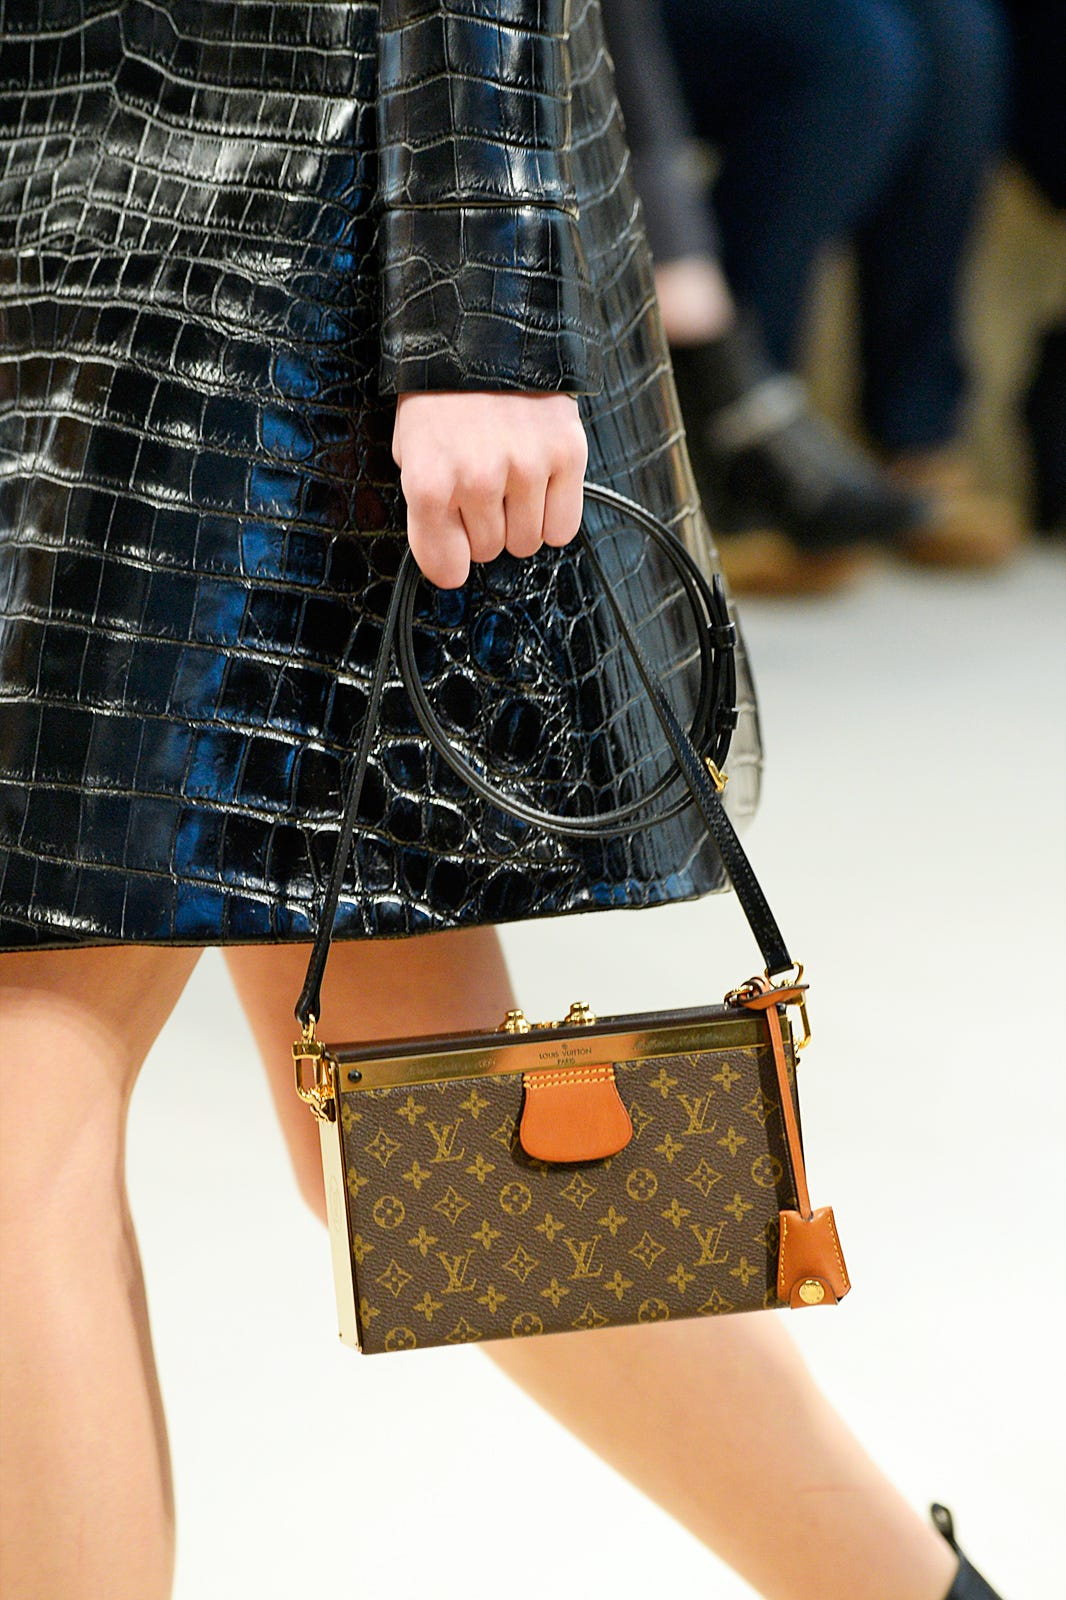 e9429e19662452 The New Louis Vuitton Bag Is Going To Be BIG (In A Tiny Way)